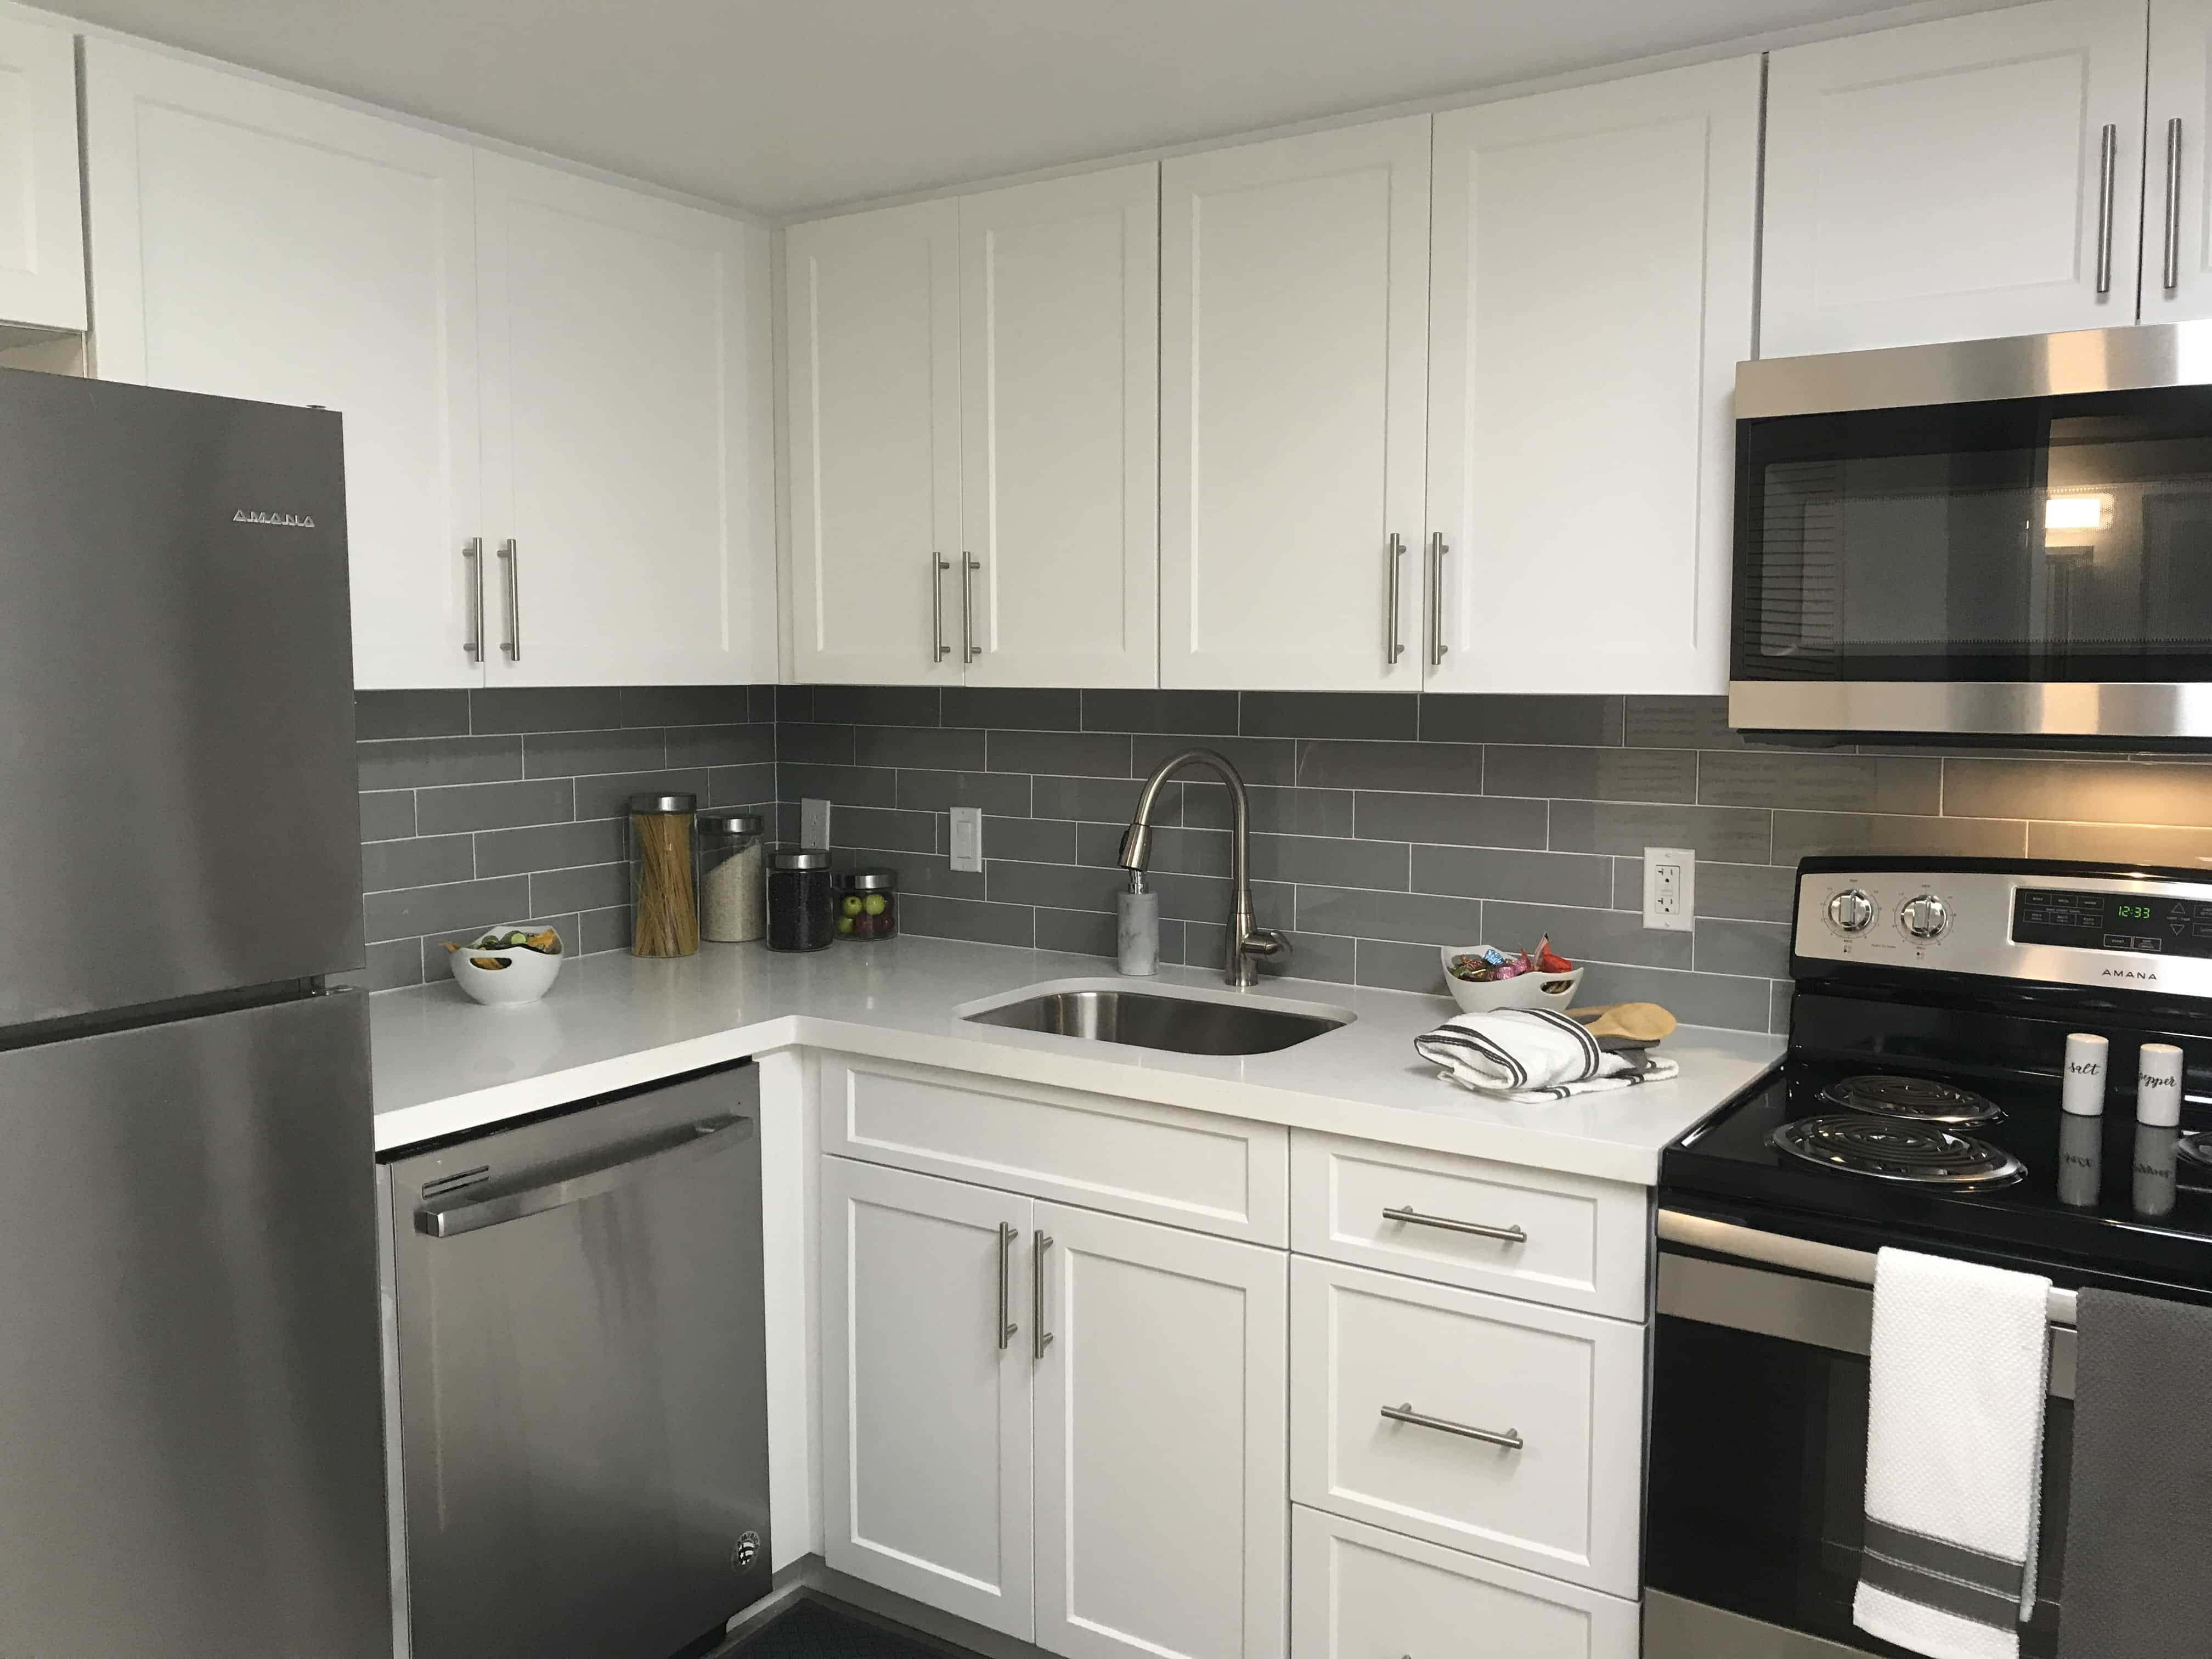 - Uptown22-Kitchens-with-tile-backsplash - Uptown 22 Apartments